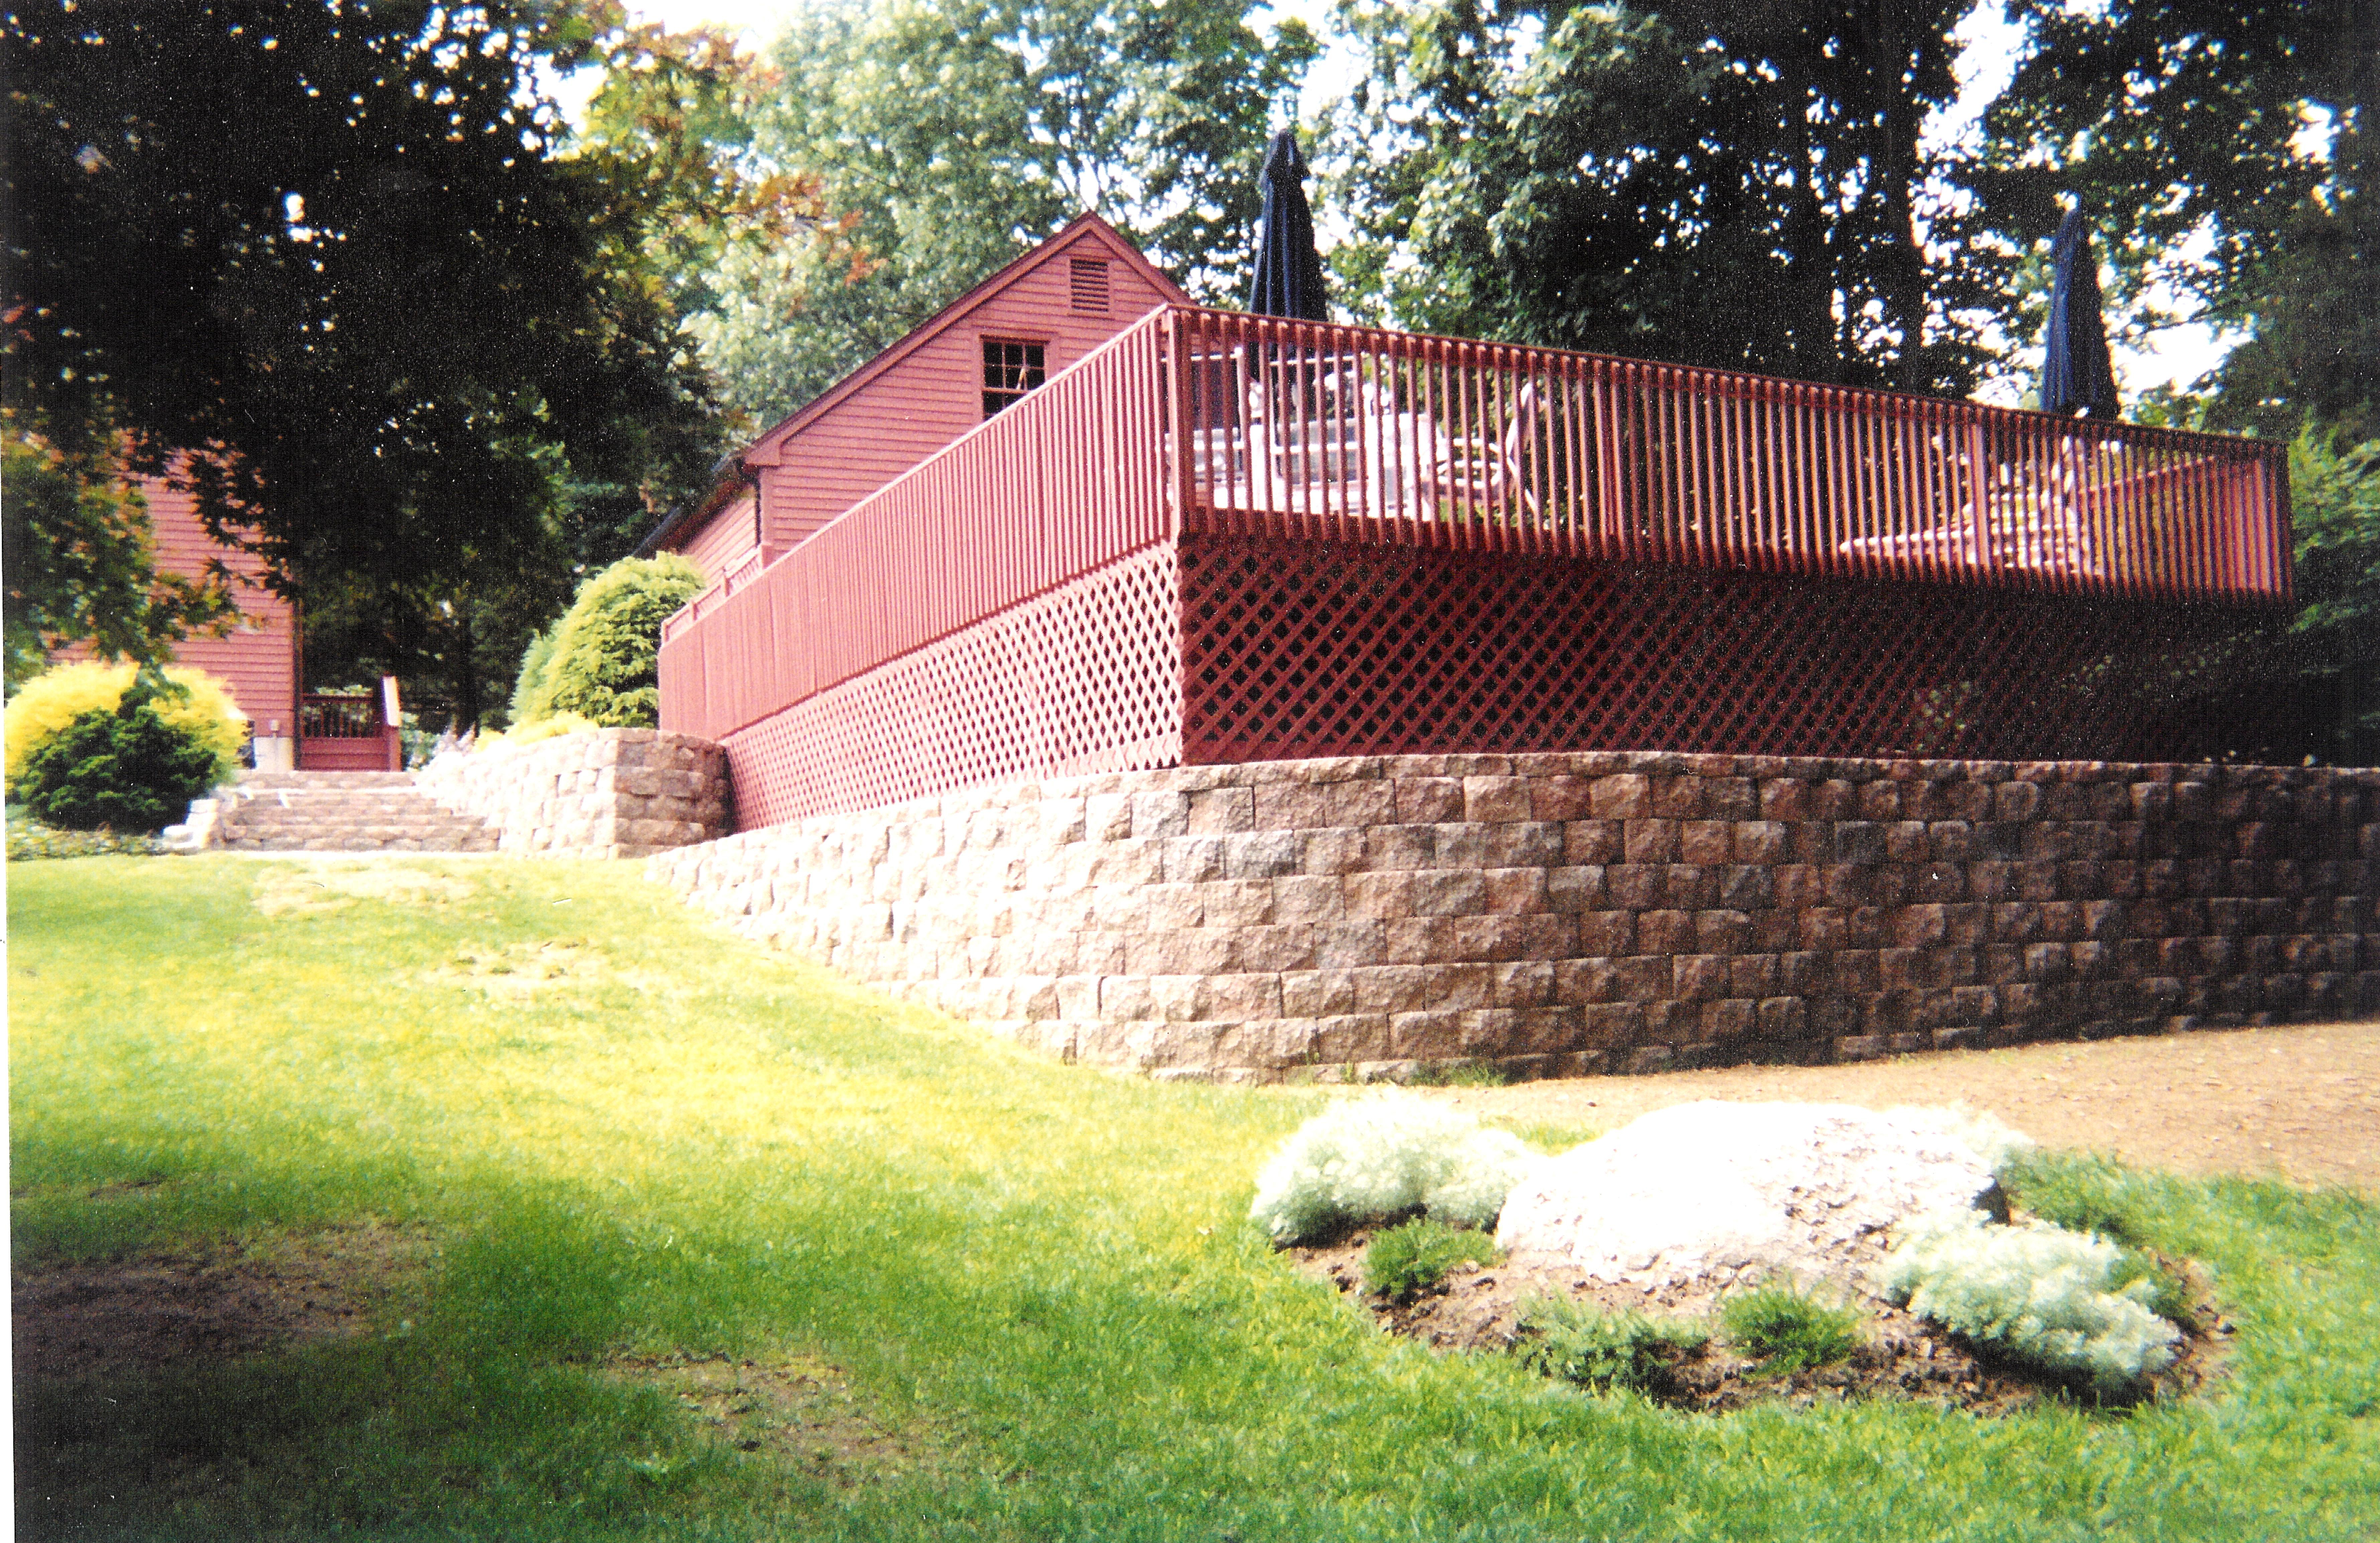 Retaining Wall How To Unlevel Ground - Add a retaining wall to your backyard to truely finish your yard turn your unlevel graded yard into the multi level usable yard that you have always